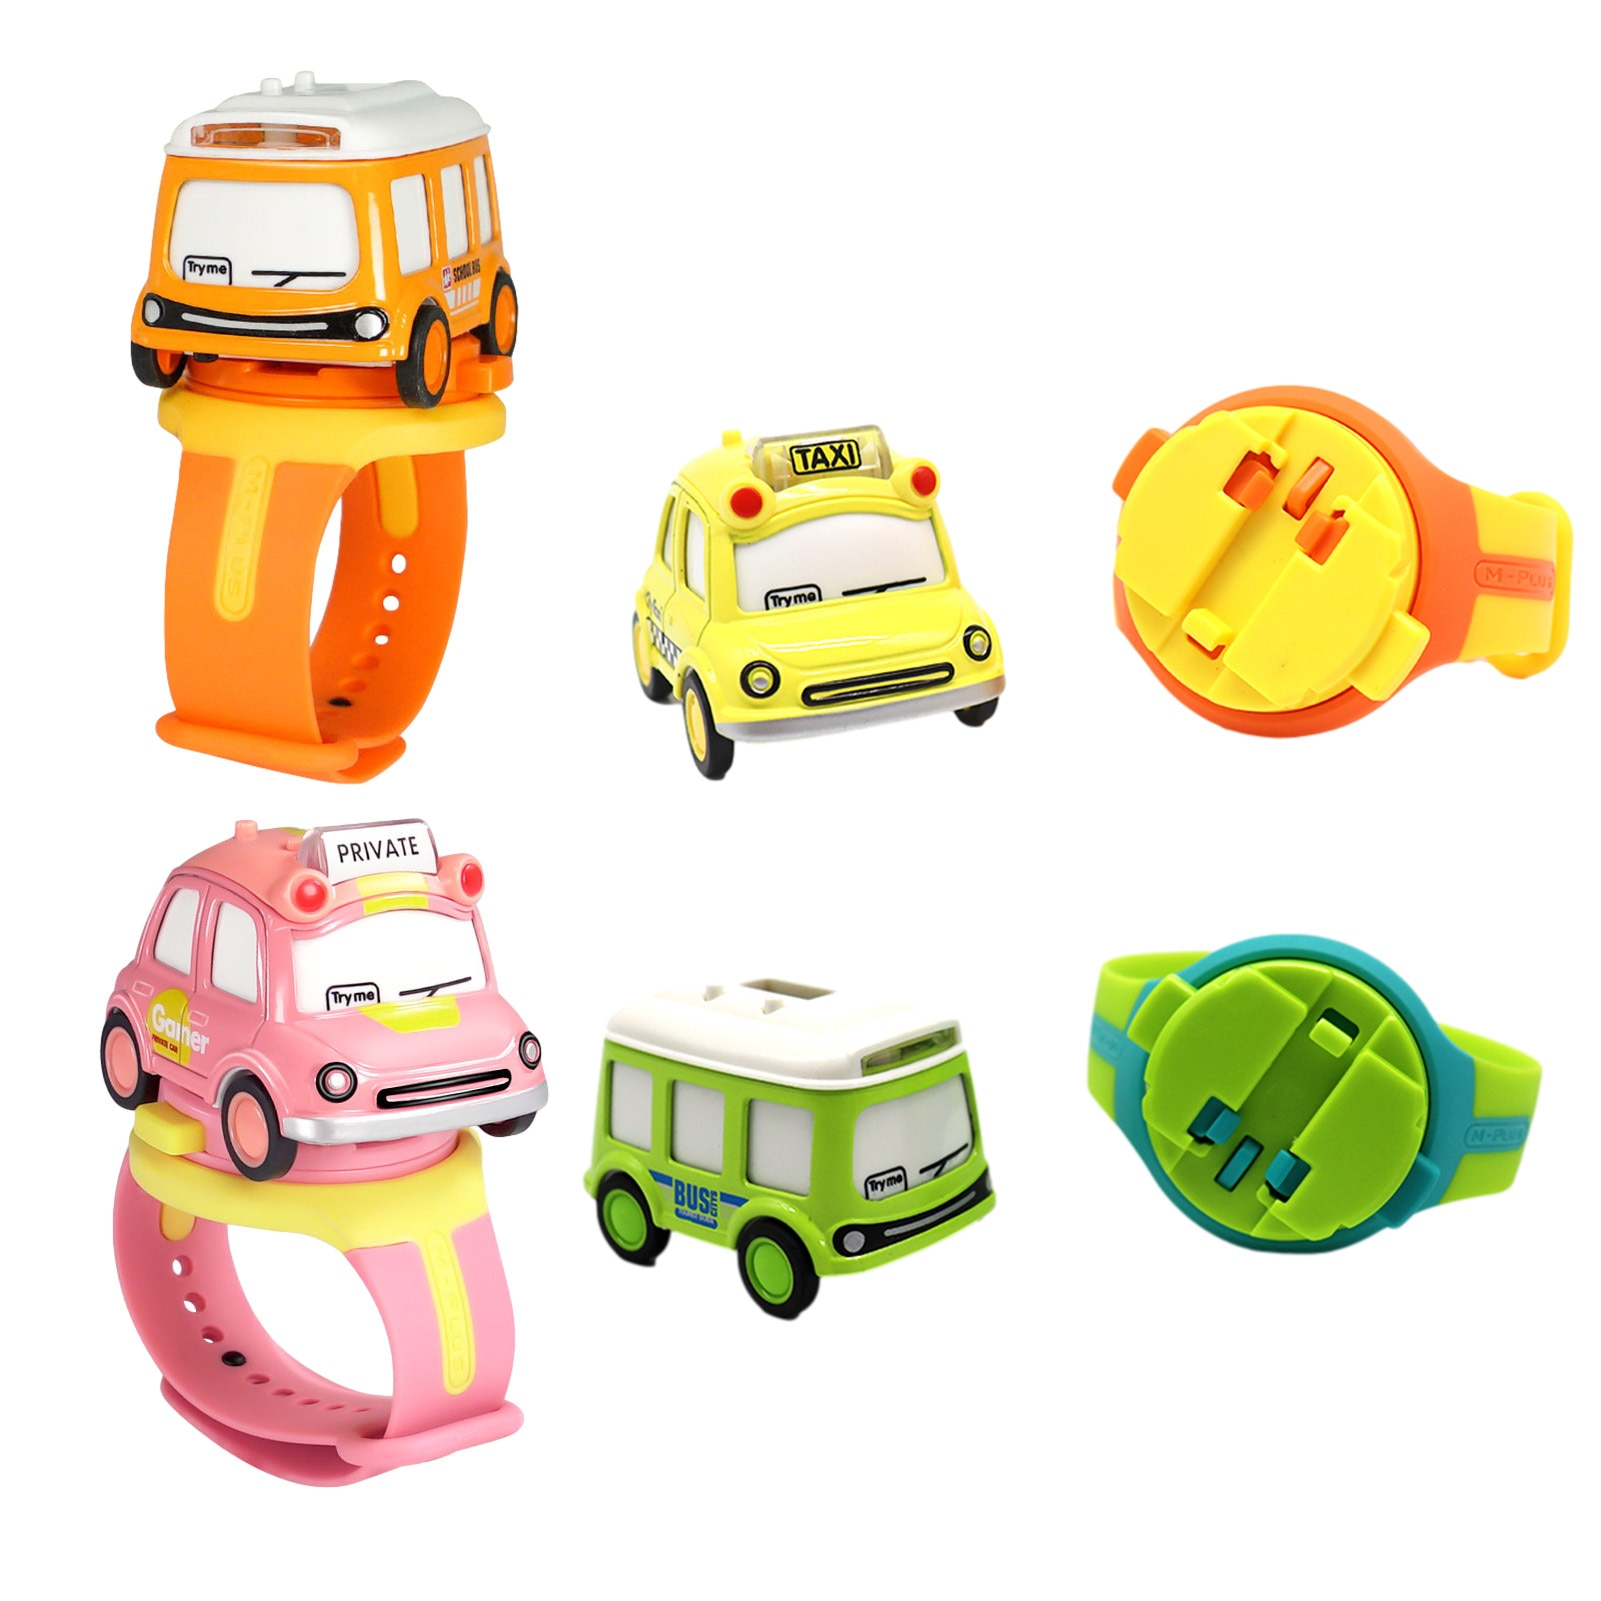 1:62 Alloy Car-with Digital Display Watch Q Version Trolley Bus Interactive Induction With Light And